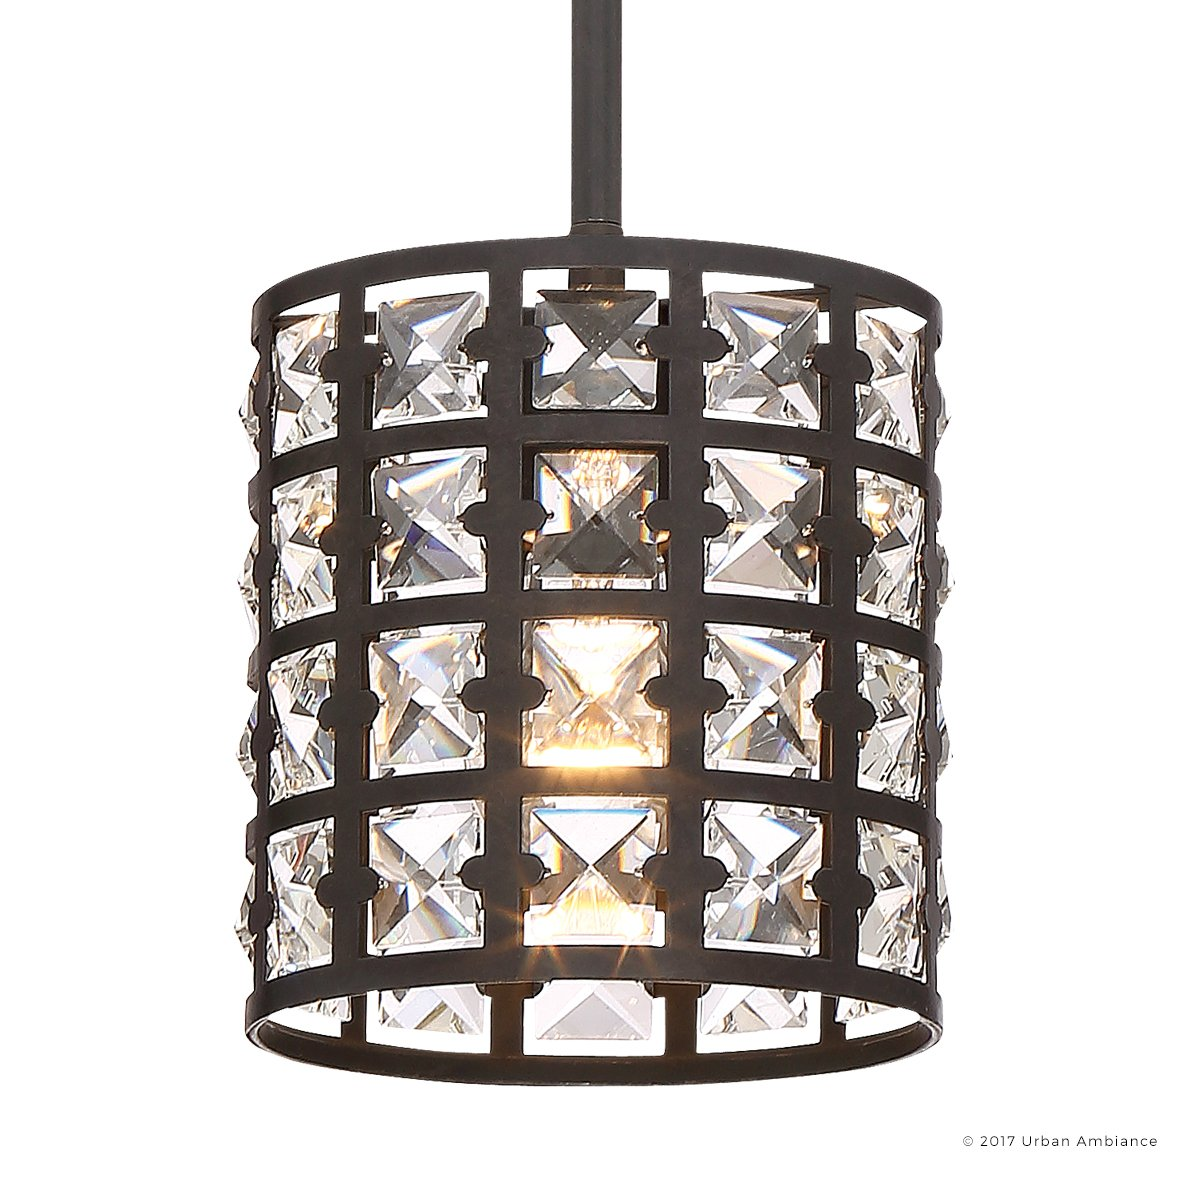 Luxury Crystal Hanging Pendant Light, Small Size: 7.5''H x 6.5''W, with Metropolitan Style Elements, Drum Design, Royal Bronze Finish and Suspended Square Crystal Shade, UQL2464 by Urban Ambiance